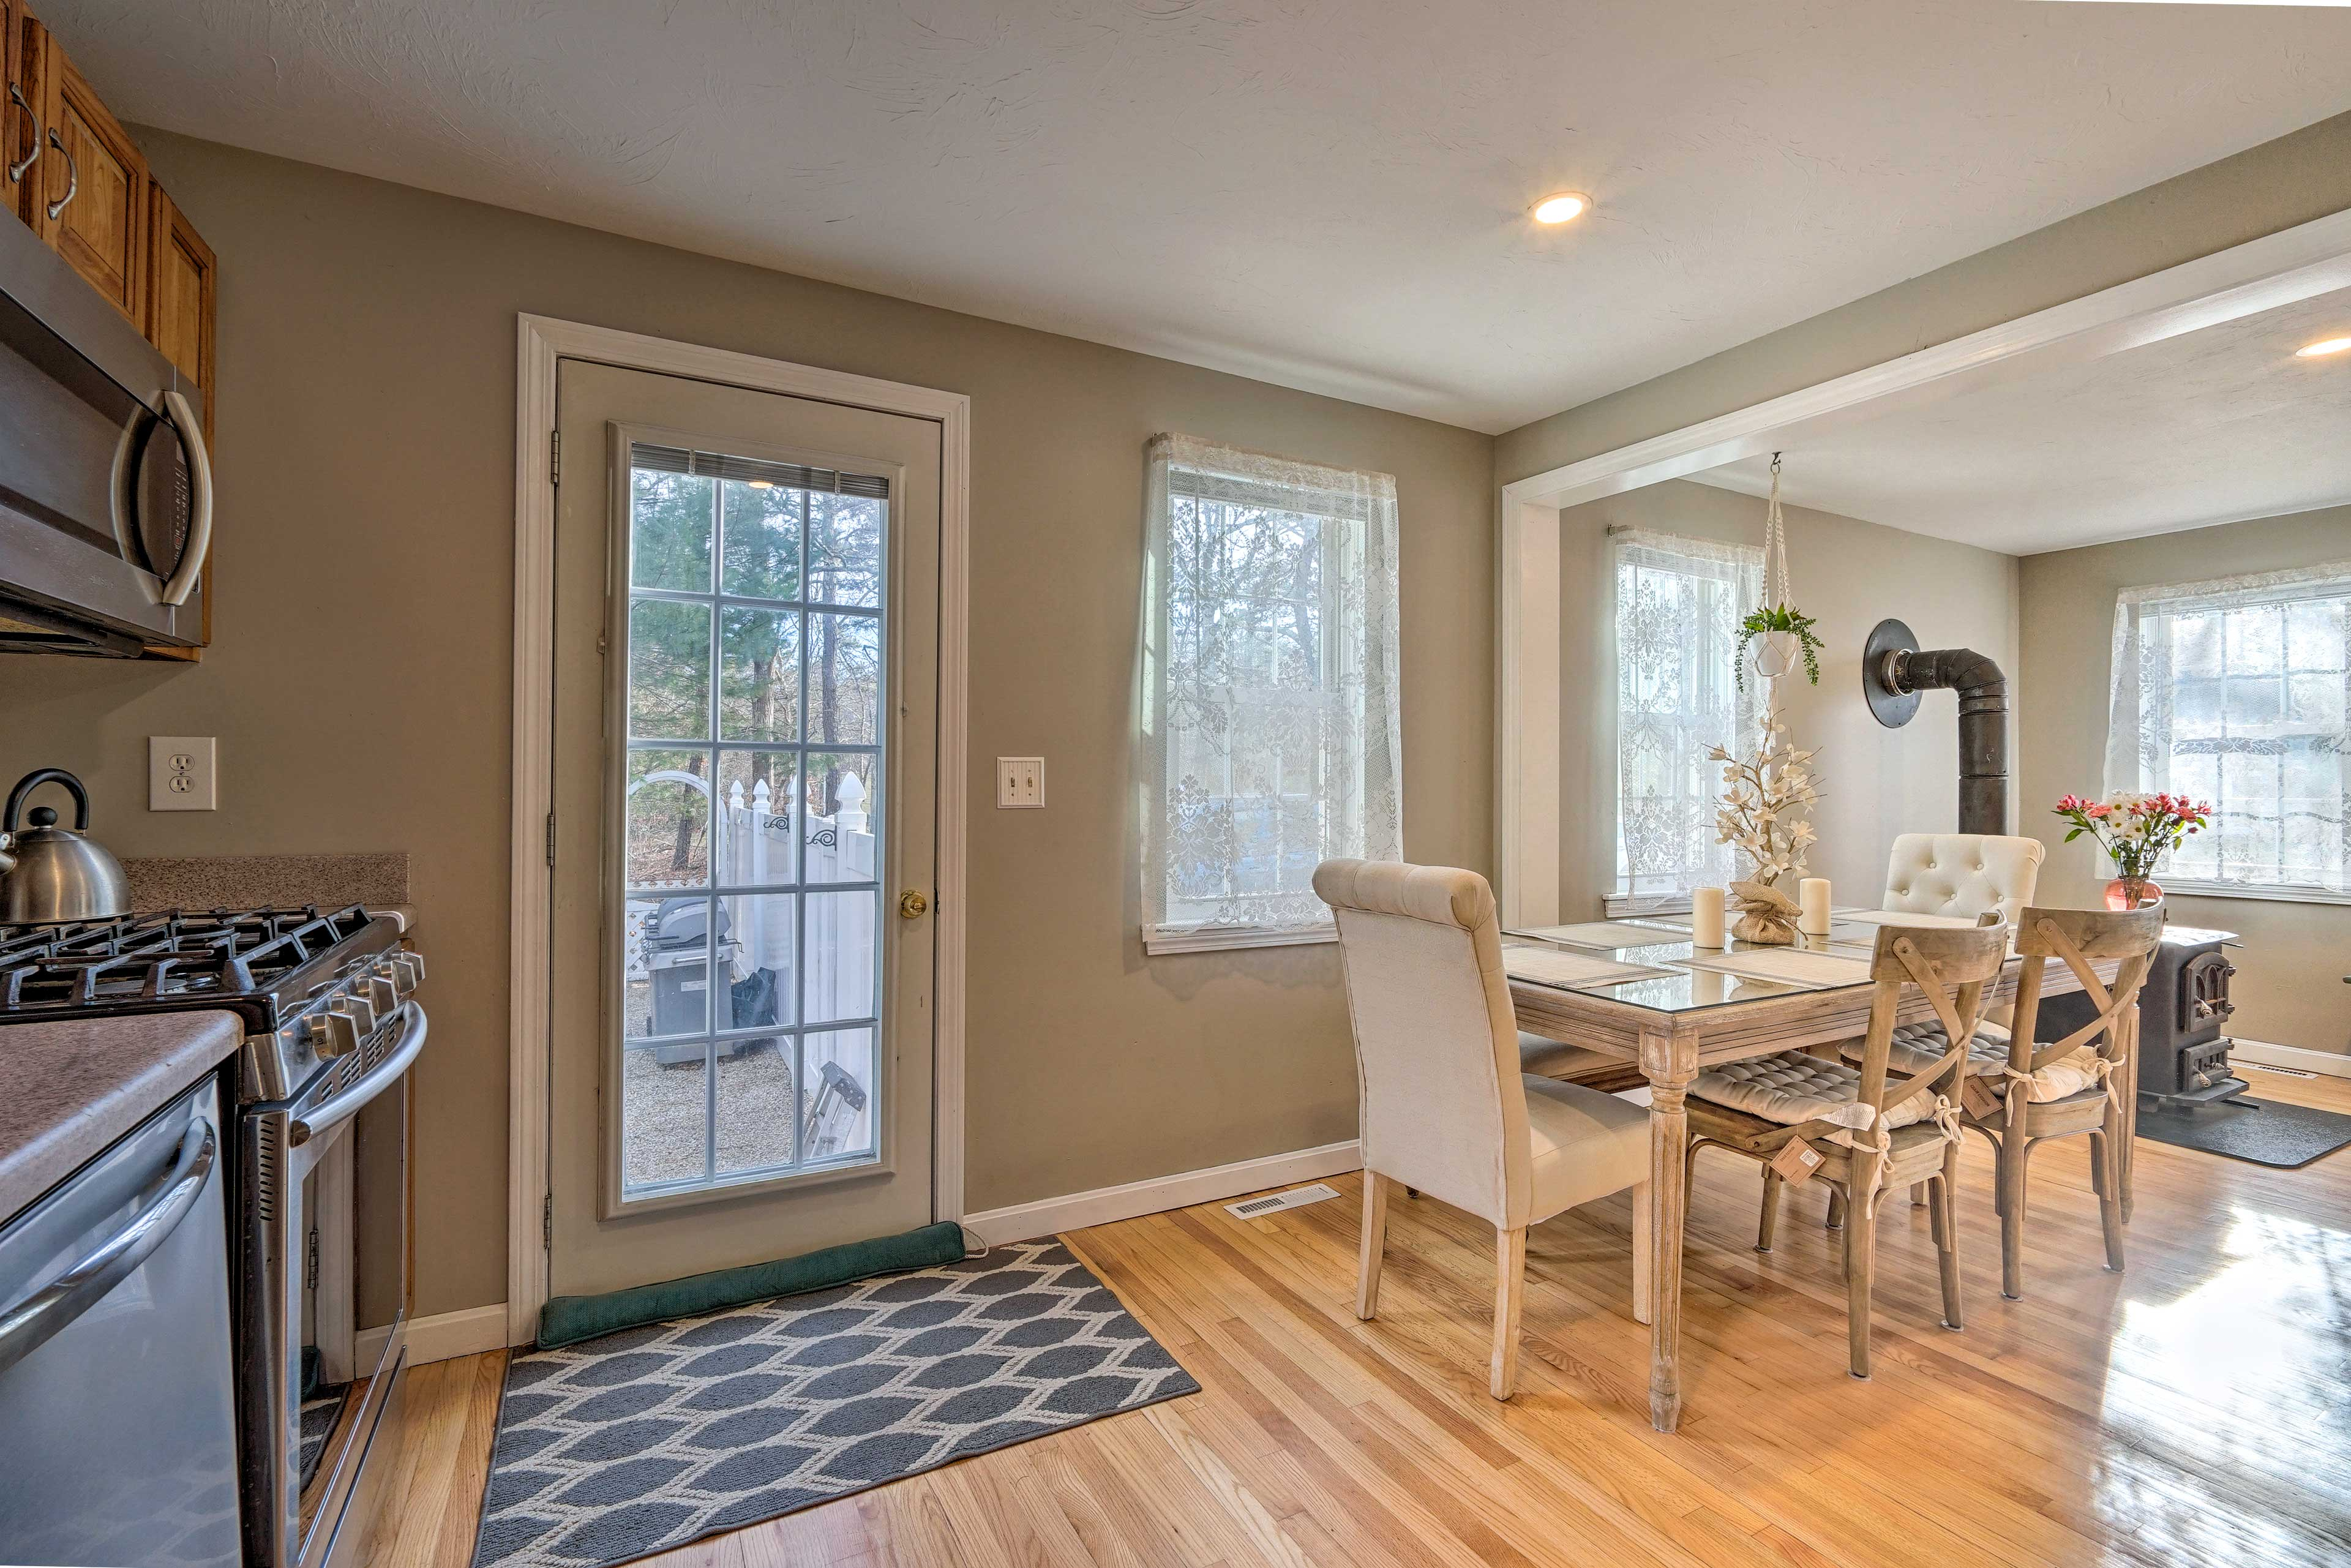 This family-friendly home has a great space for indoor & outdoor activities!